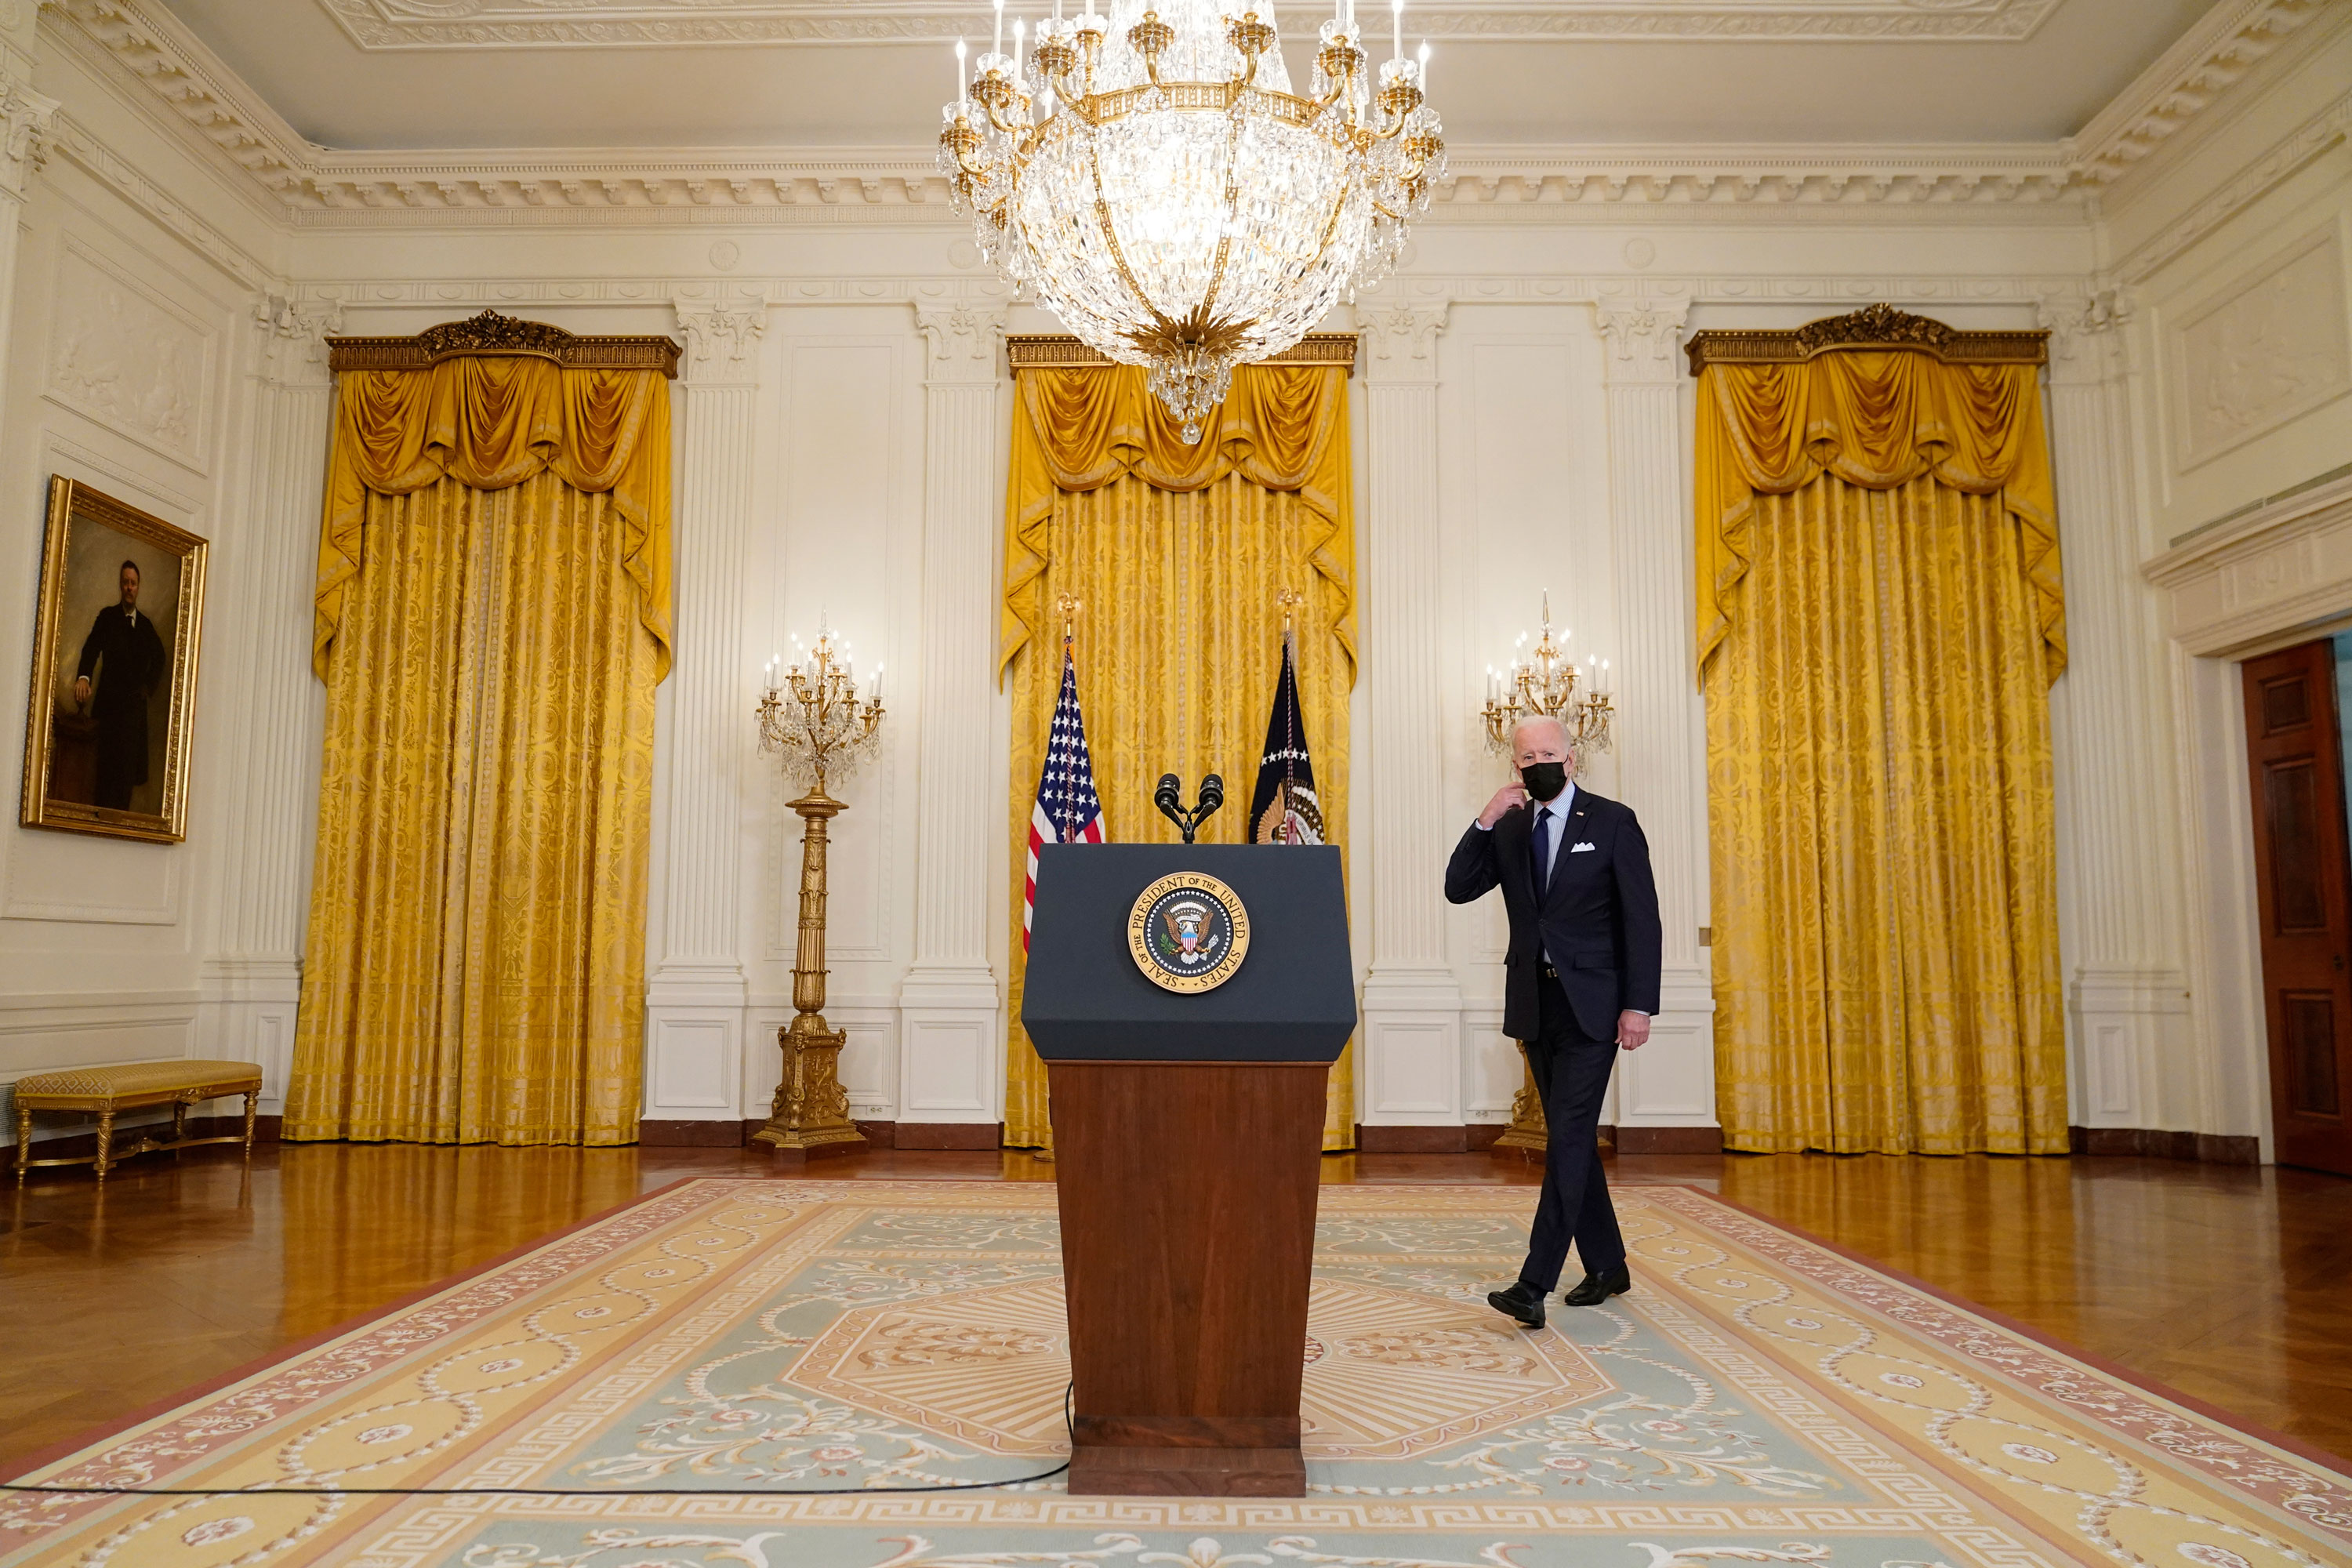 White House says Biden will receive his physical exam later this year